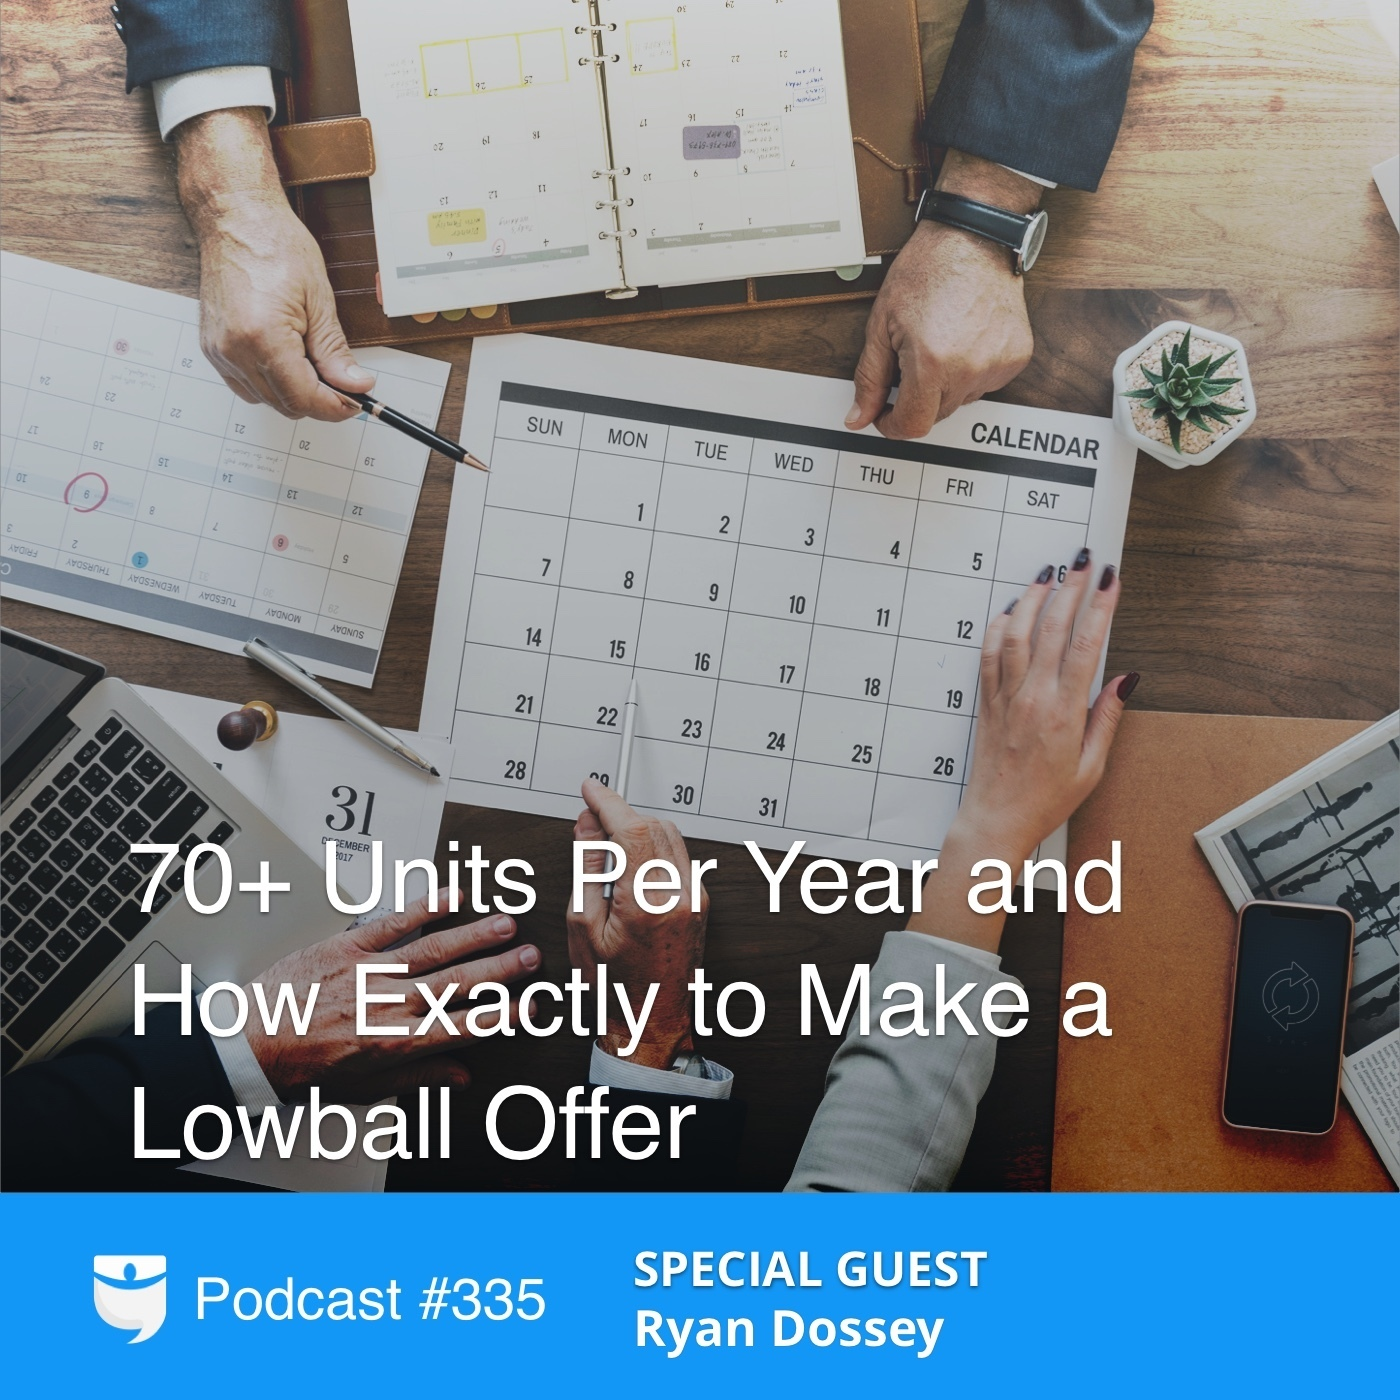 #335: 70+ Units Per Year and How Exactly to Make a Lowball Offer with Ryan Dossey